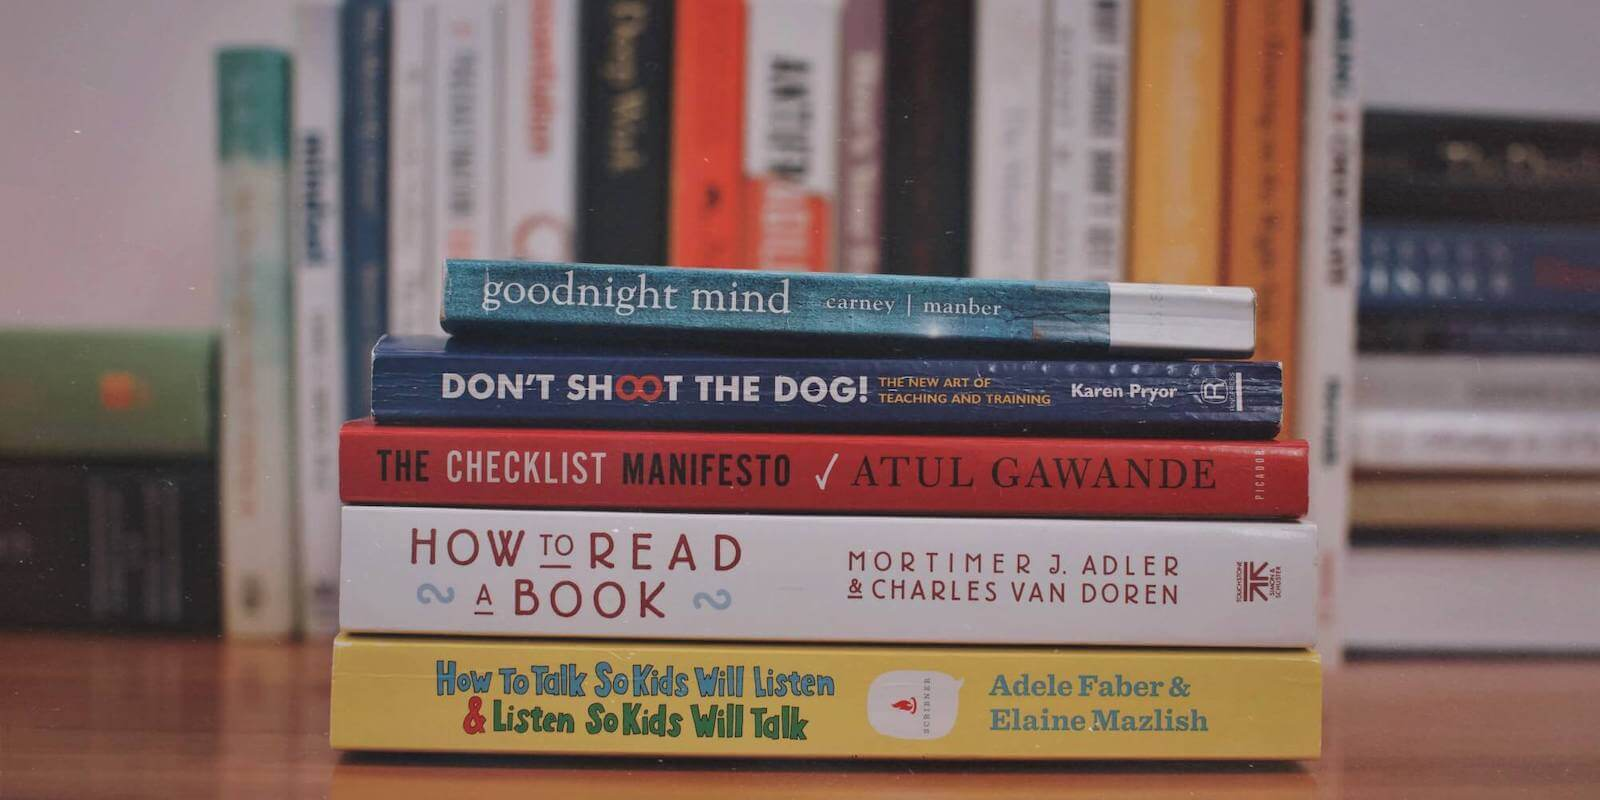 The Top 5 Most Underrated Self-Help Books Everyone Should